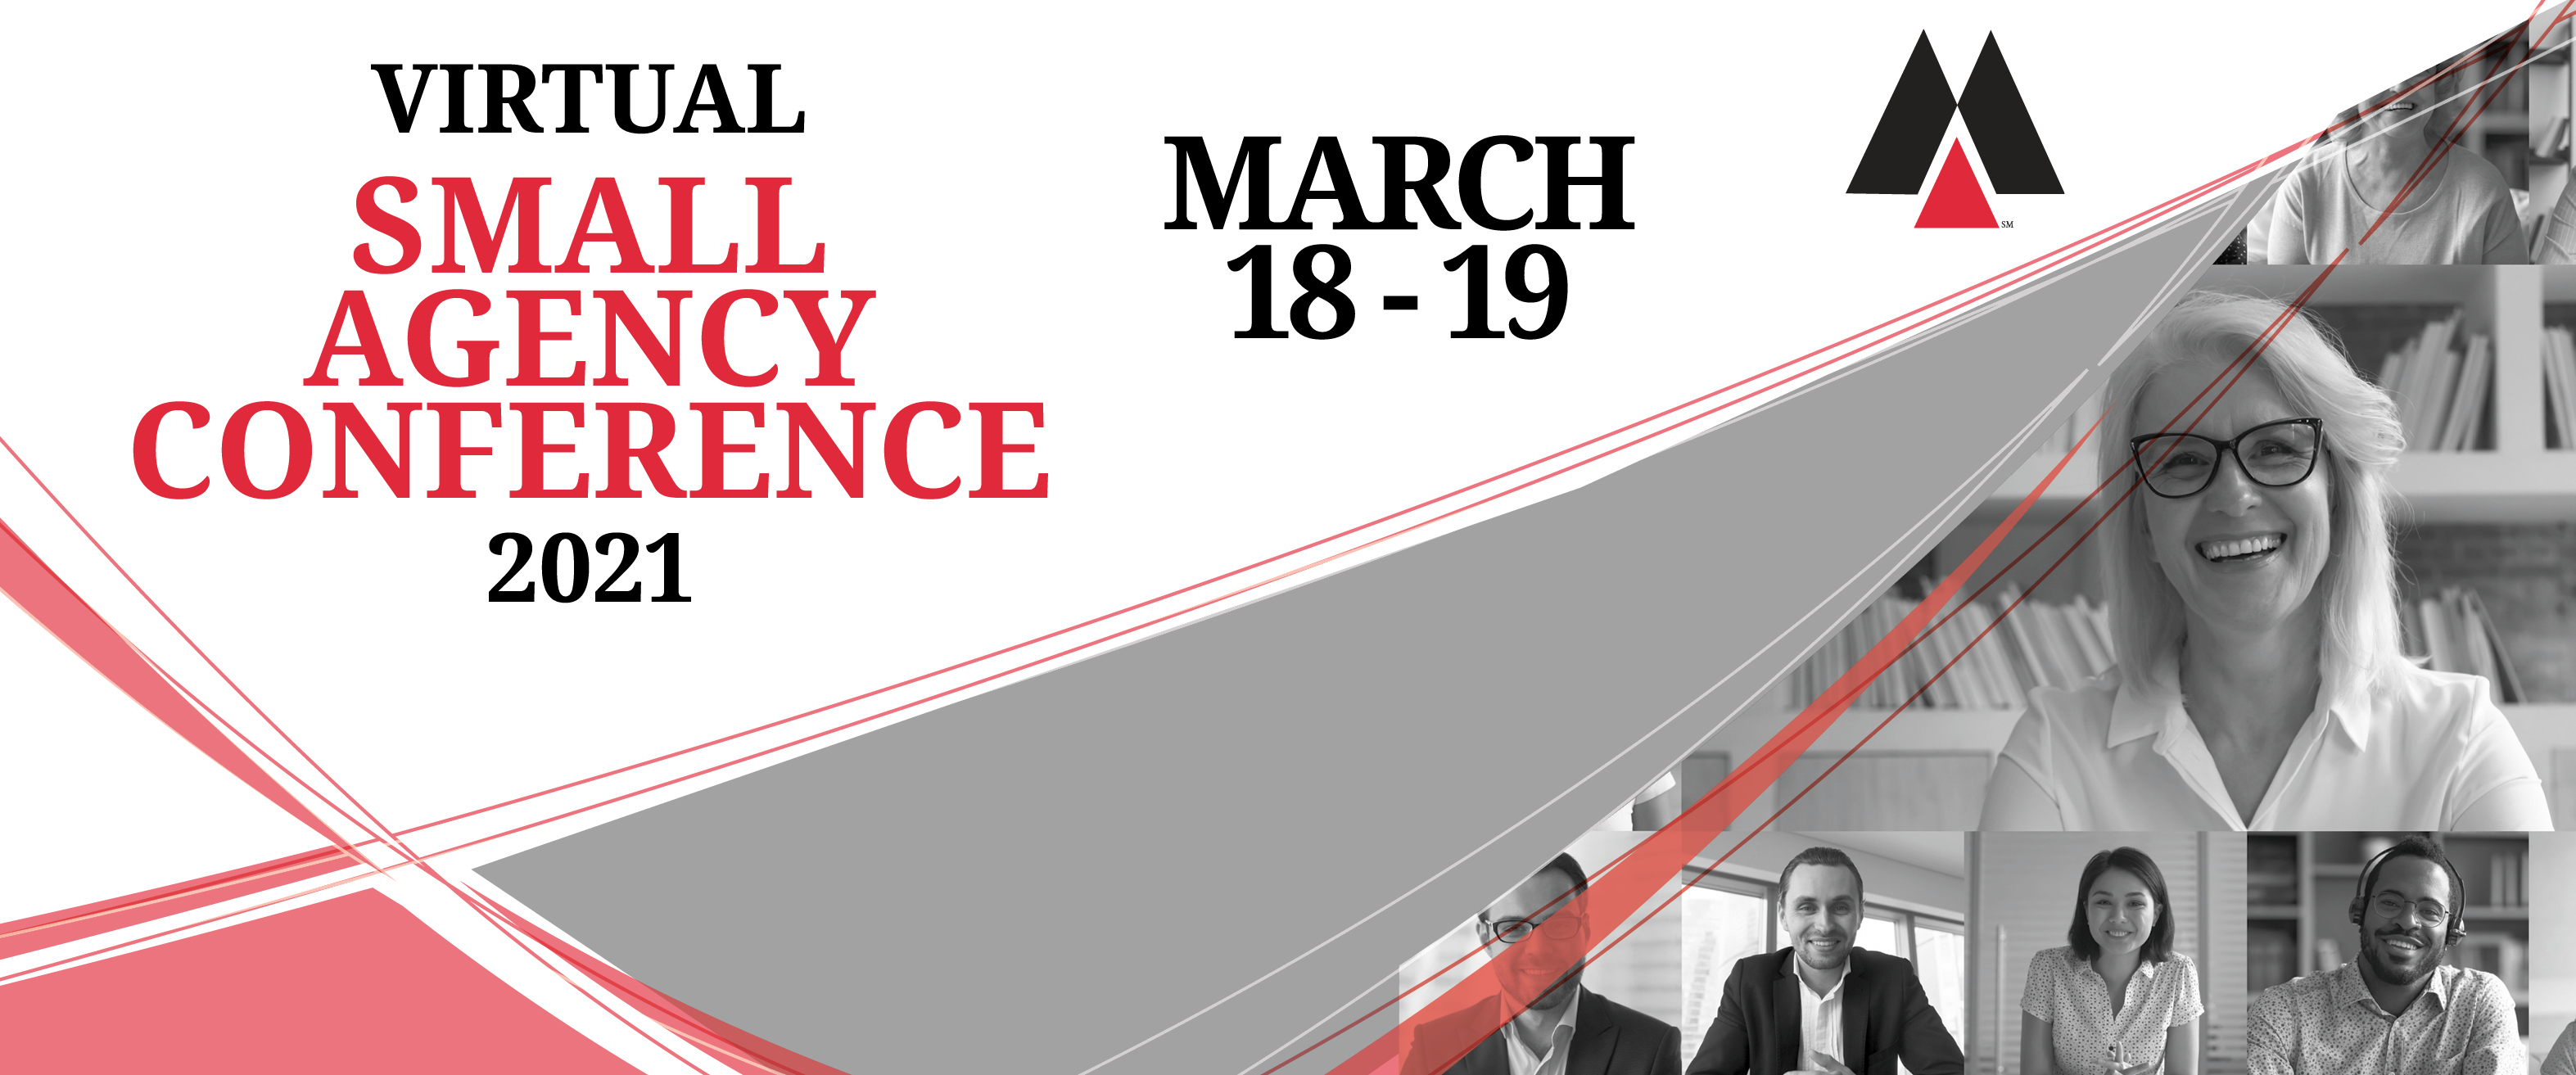 Virtual Small Agency Conference